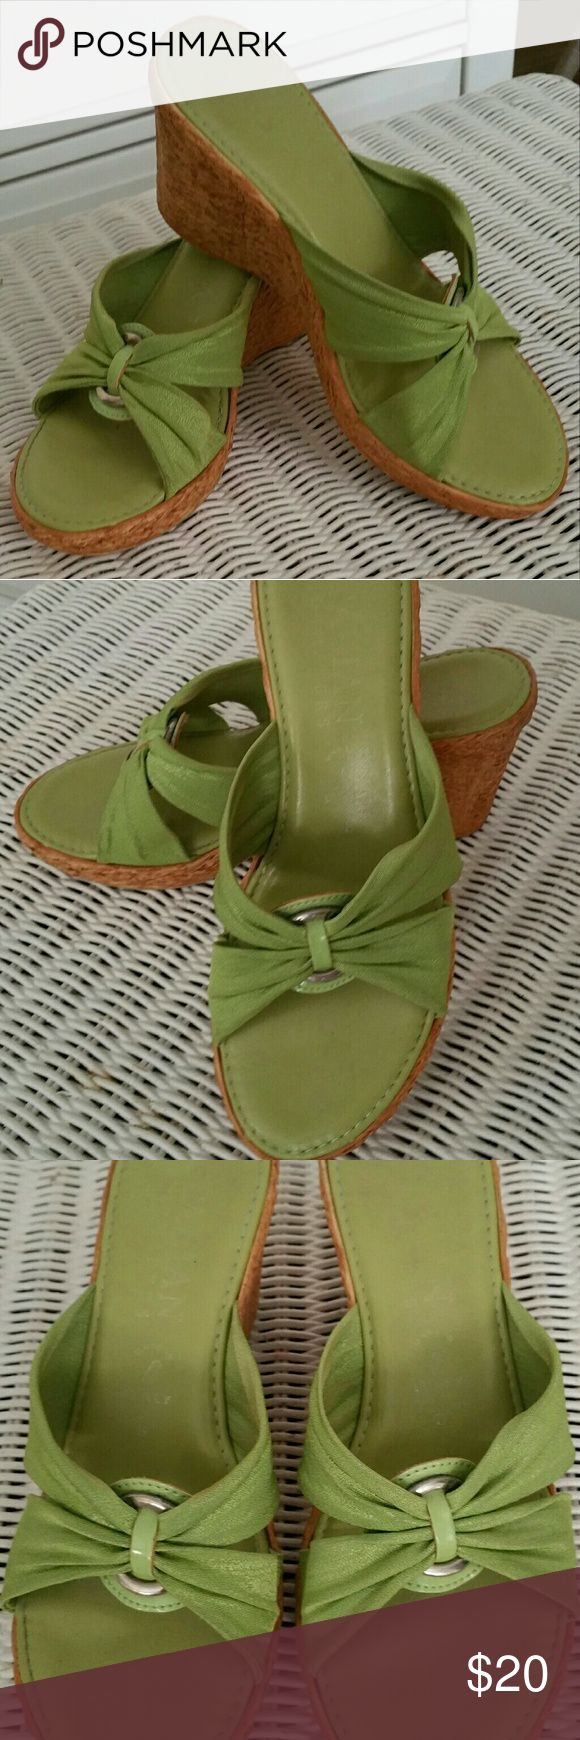 Sandals Green leather w silver accent on top. Purchased at Stein Mart. Worn very little. In great shape. Lime green in color. Worn with an INC sweater in my closet. International Shoemaker Shoes Sandals